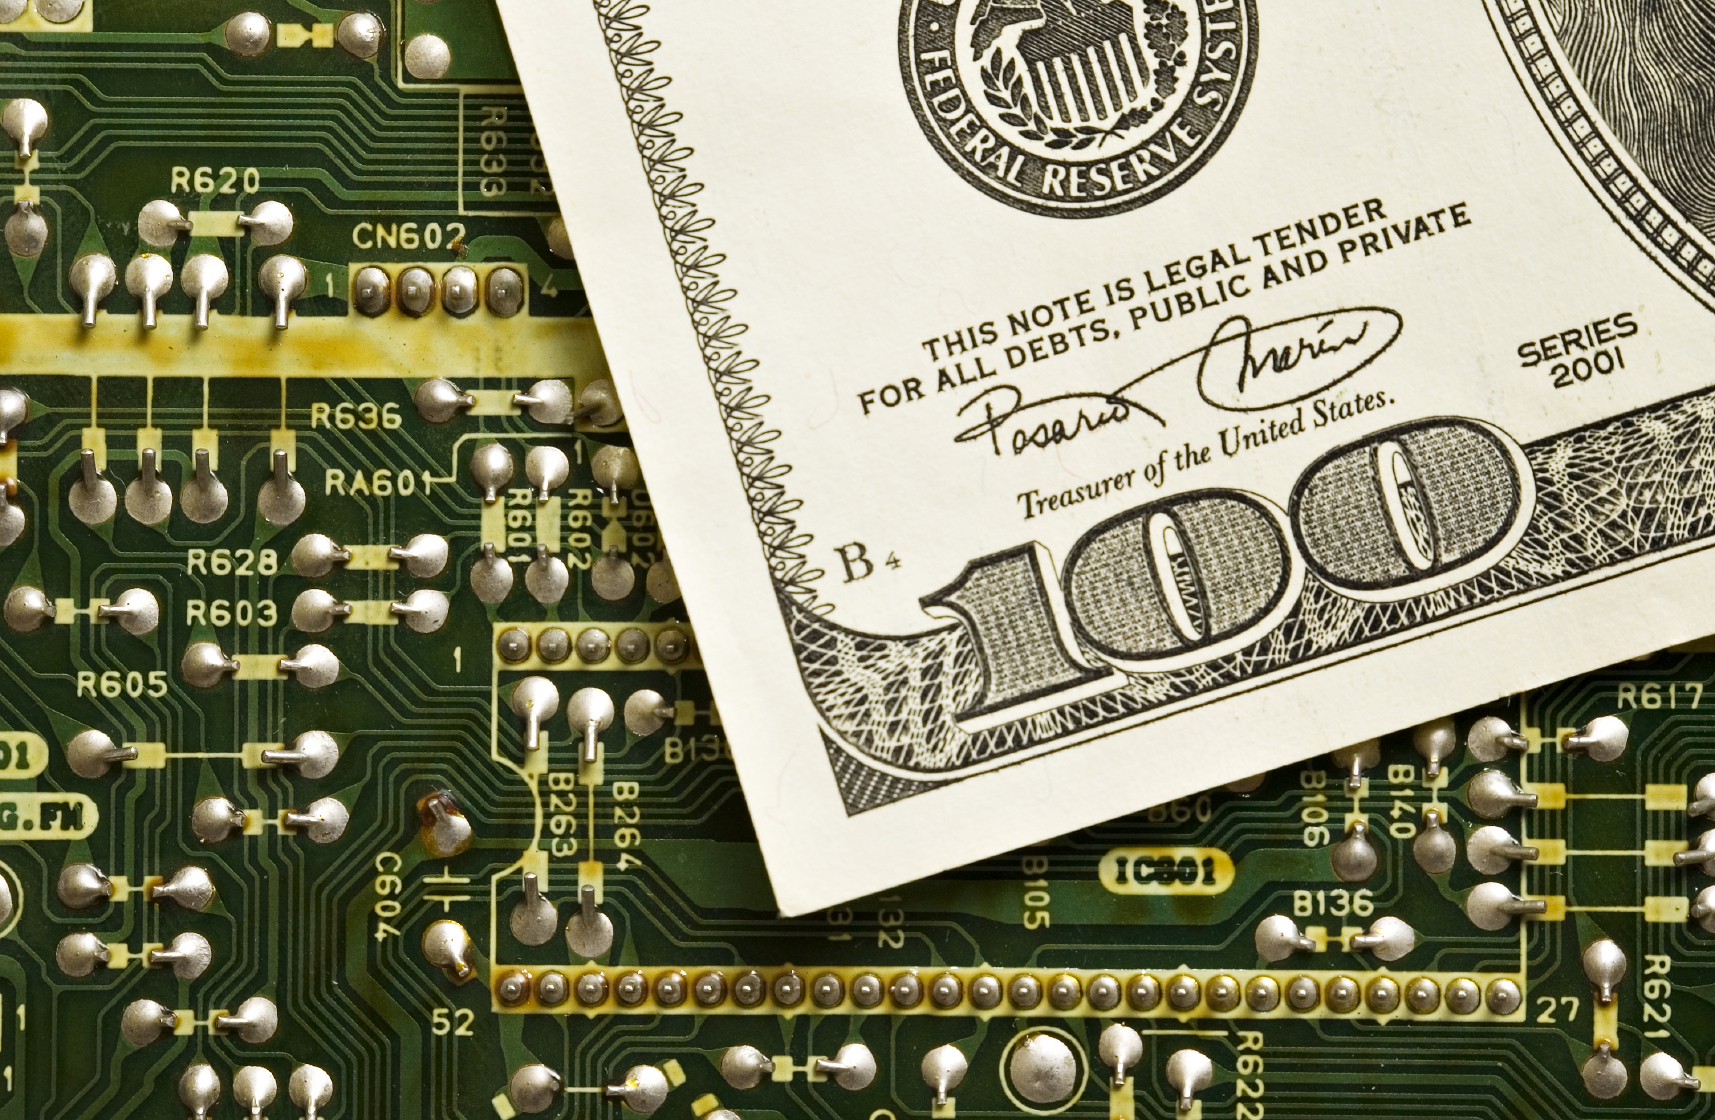 IP-Backed Finance: When Using IP As Collateral Can Pay Dividends